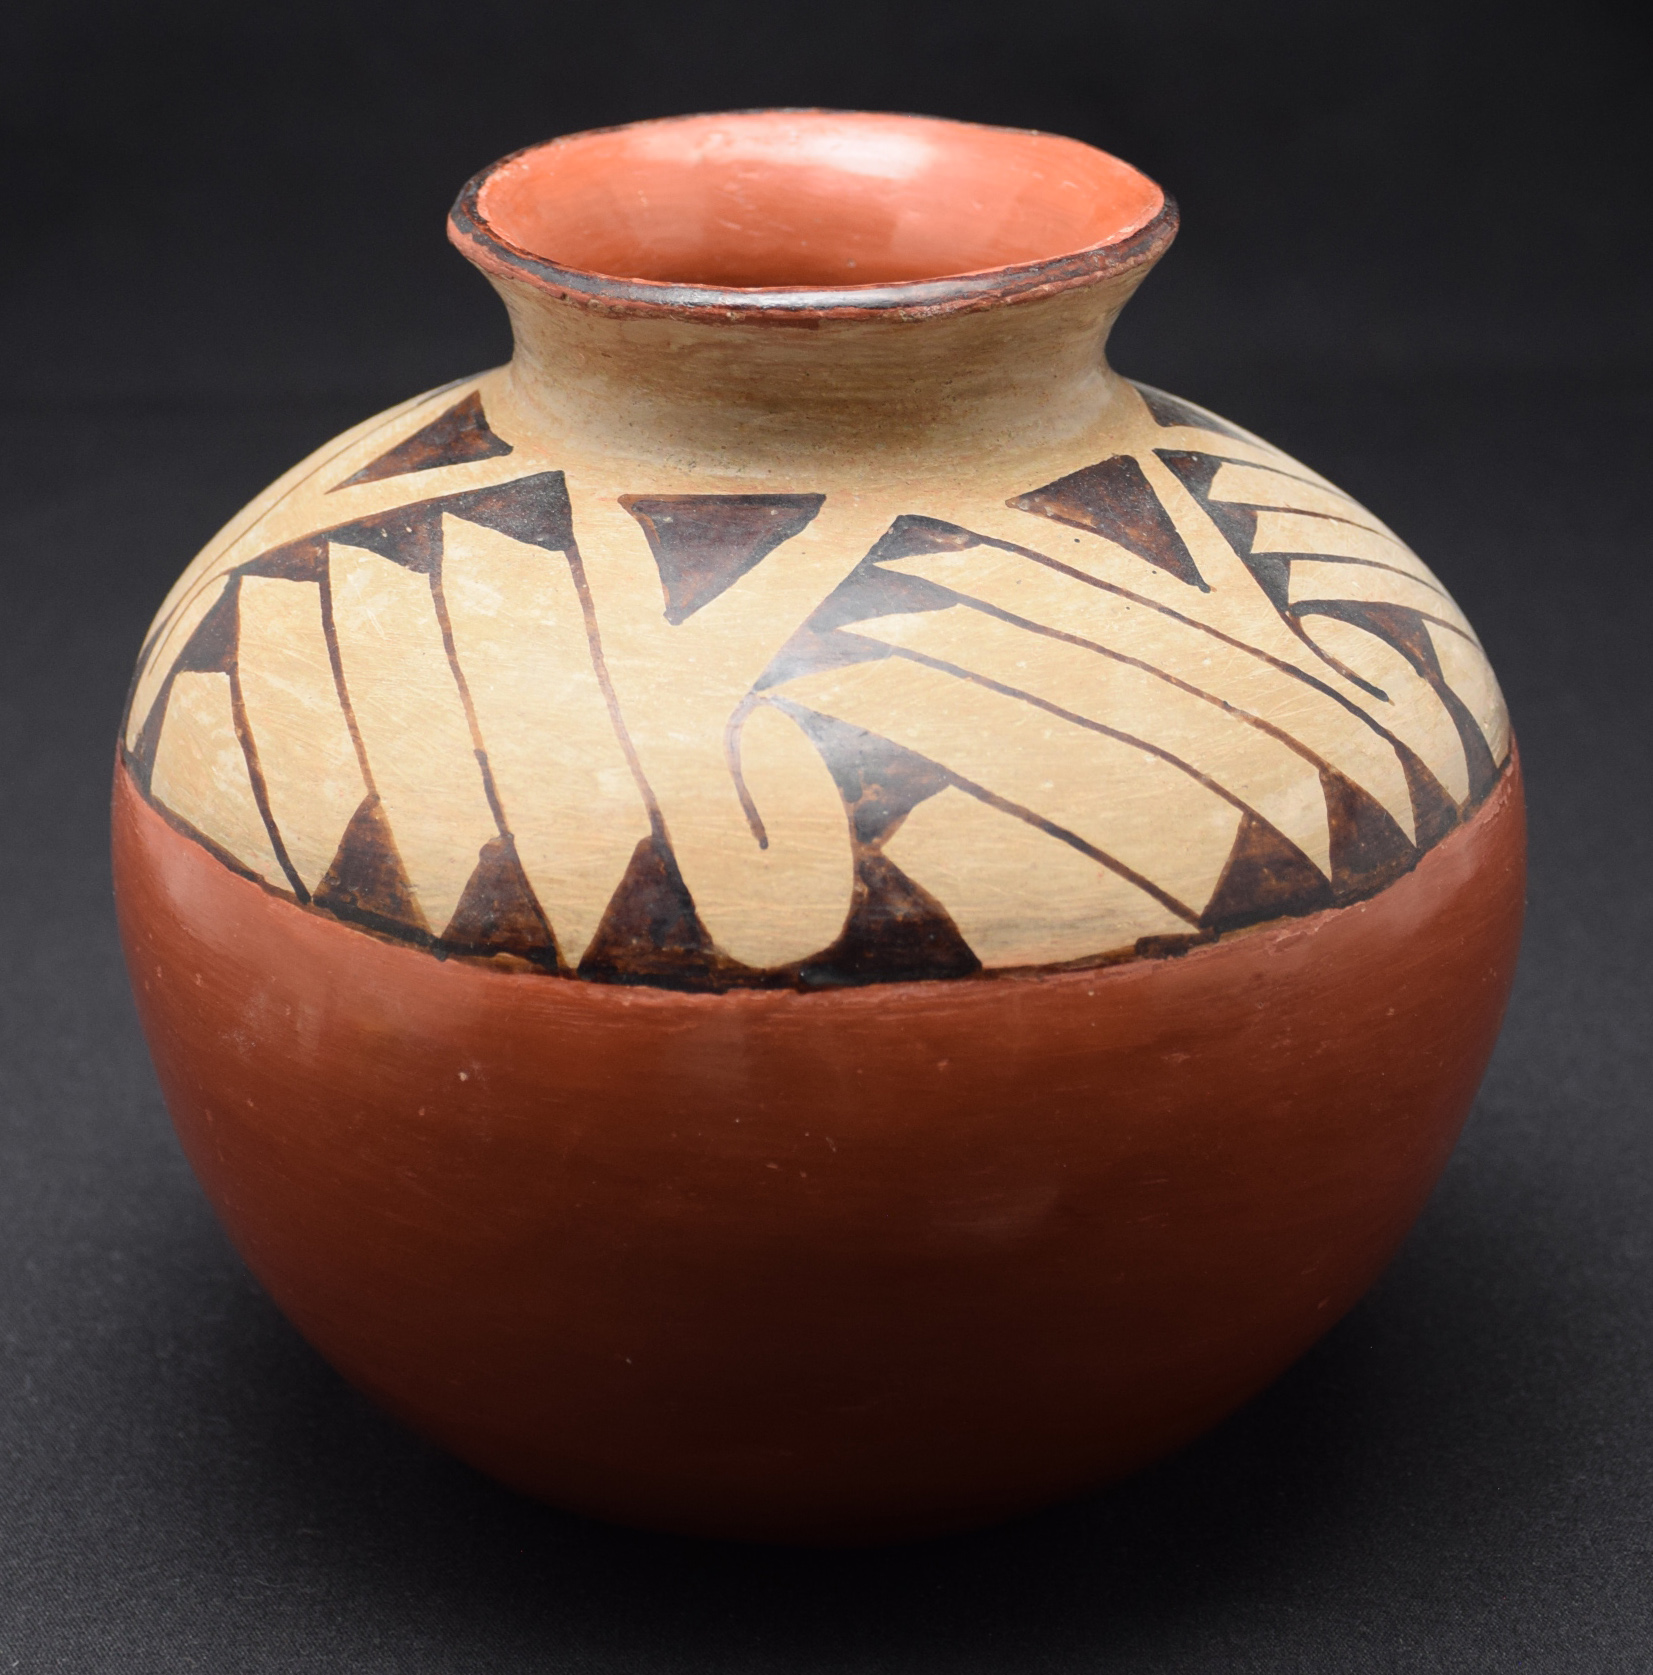 Pee-Posh pottery collection, vase with geometric design